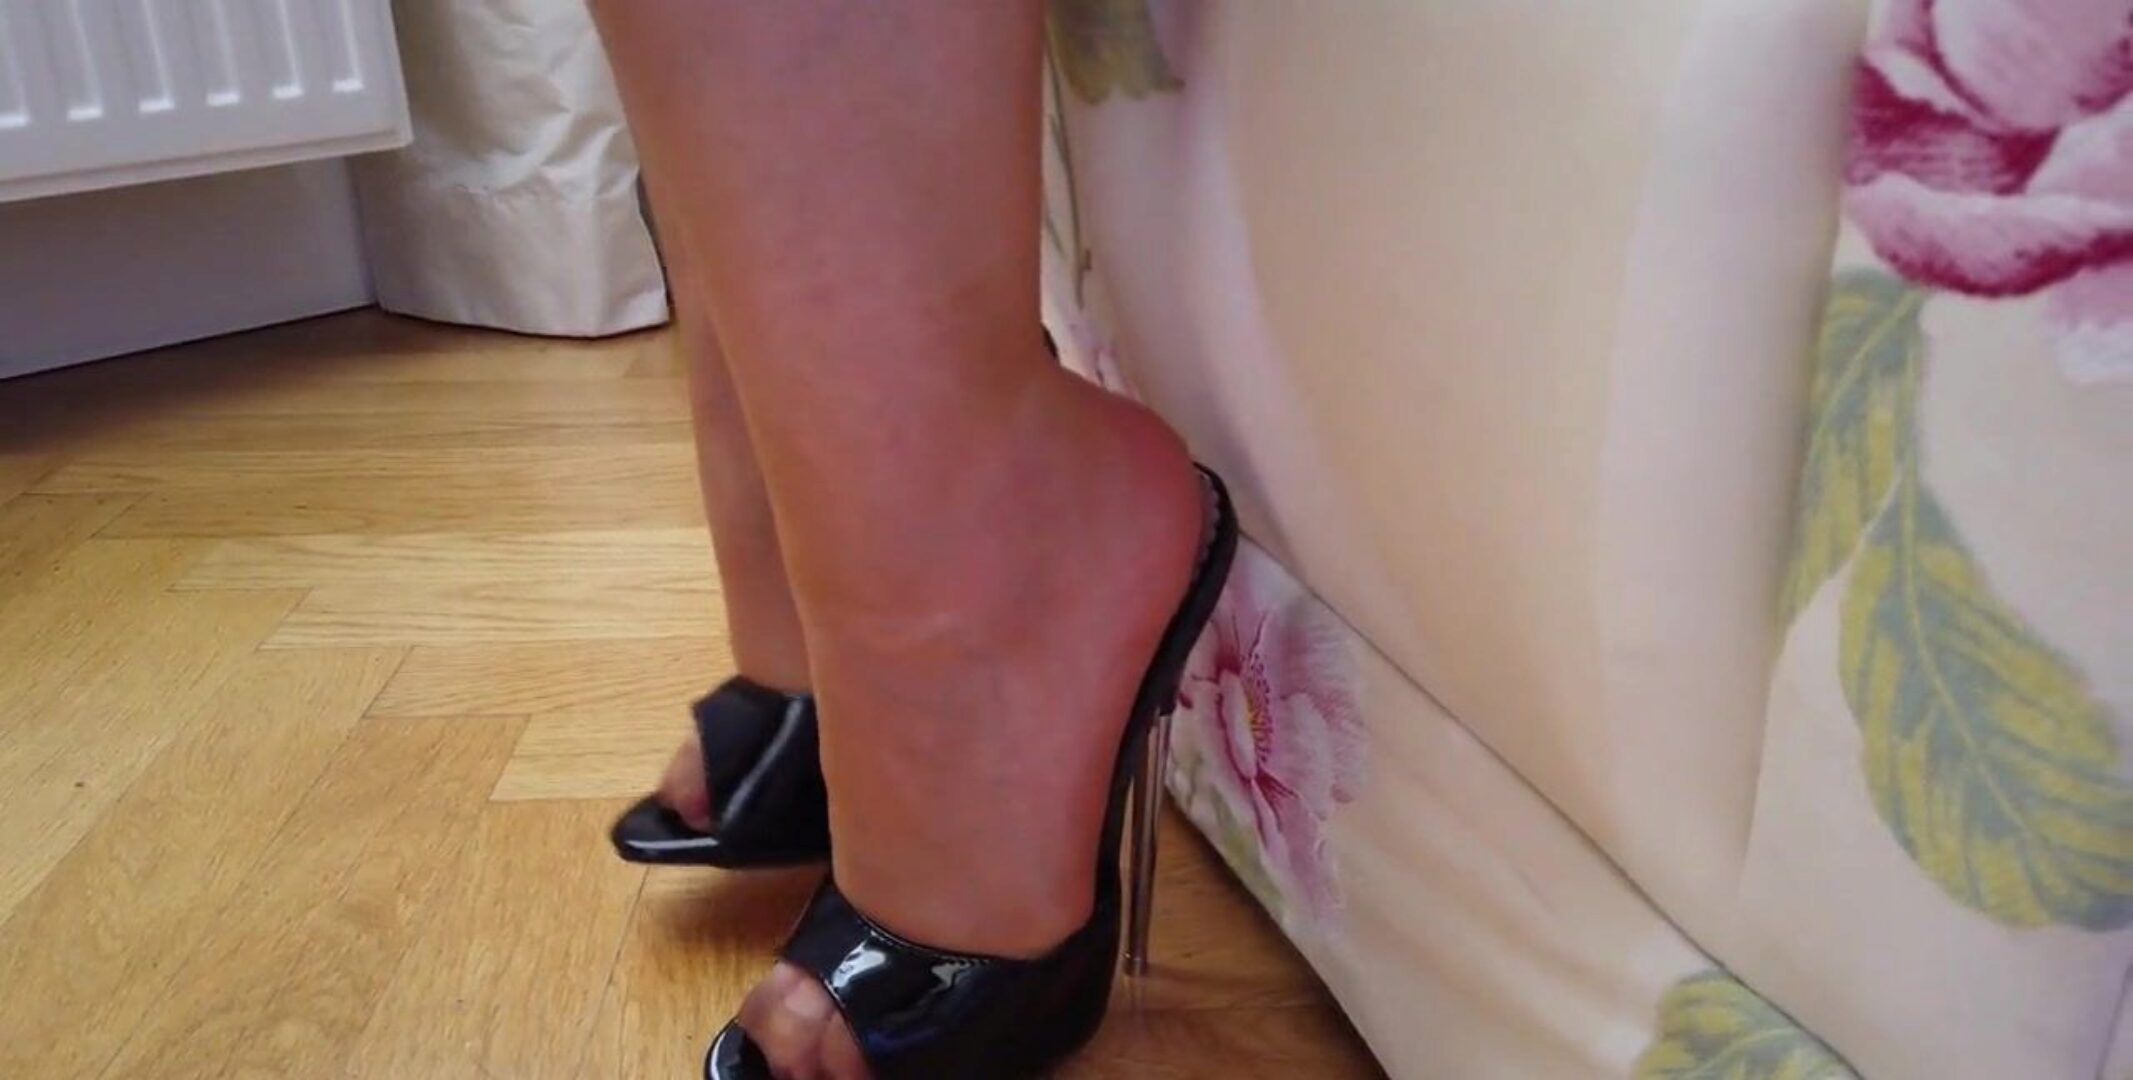 Feet in Nylon - Video 42, Free Nylons HD Porn c2: xHamster Watch Feet in Nylon - Video 42 movie on xHamster, the best HD fuck-fest tube web resource with tons of free Nylons In Vimeo & 4tube Mobile porn videos